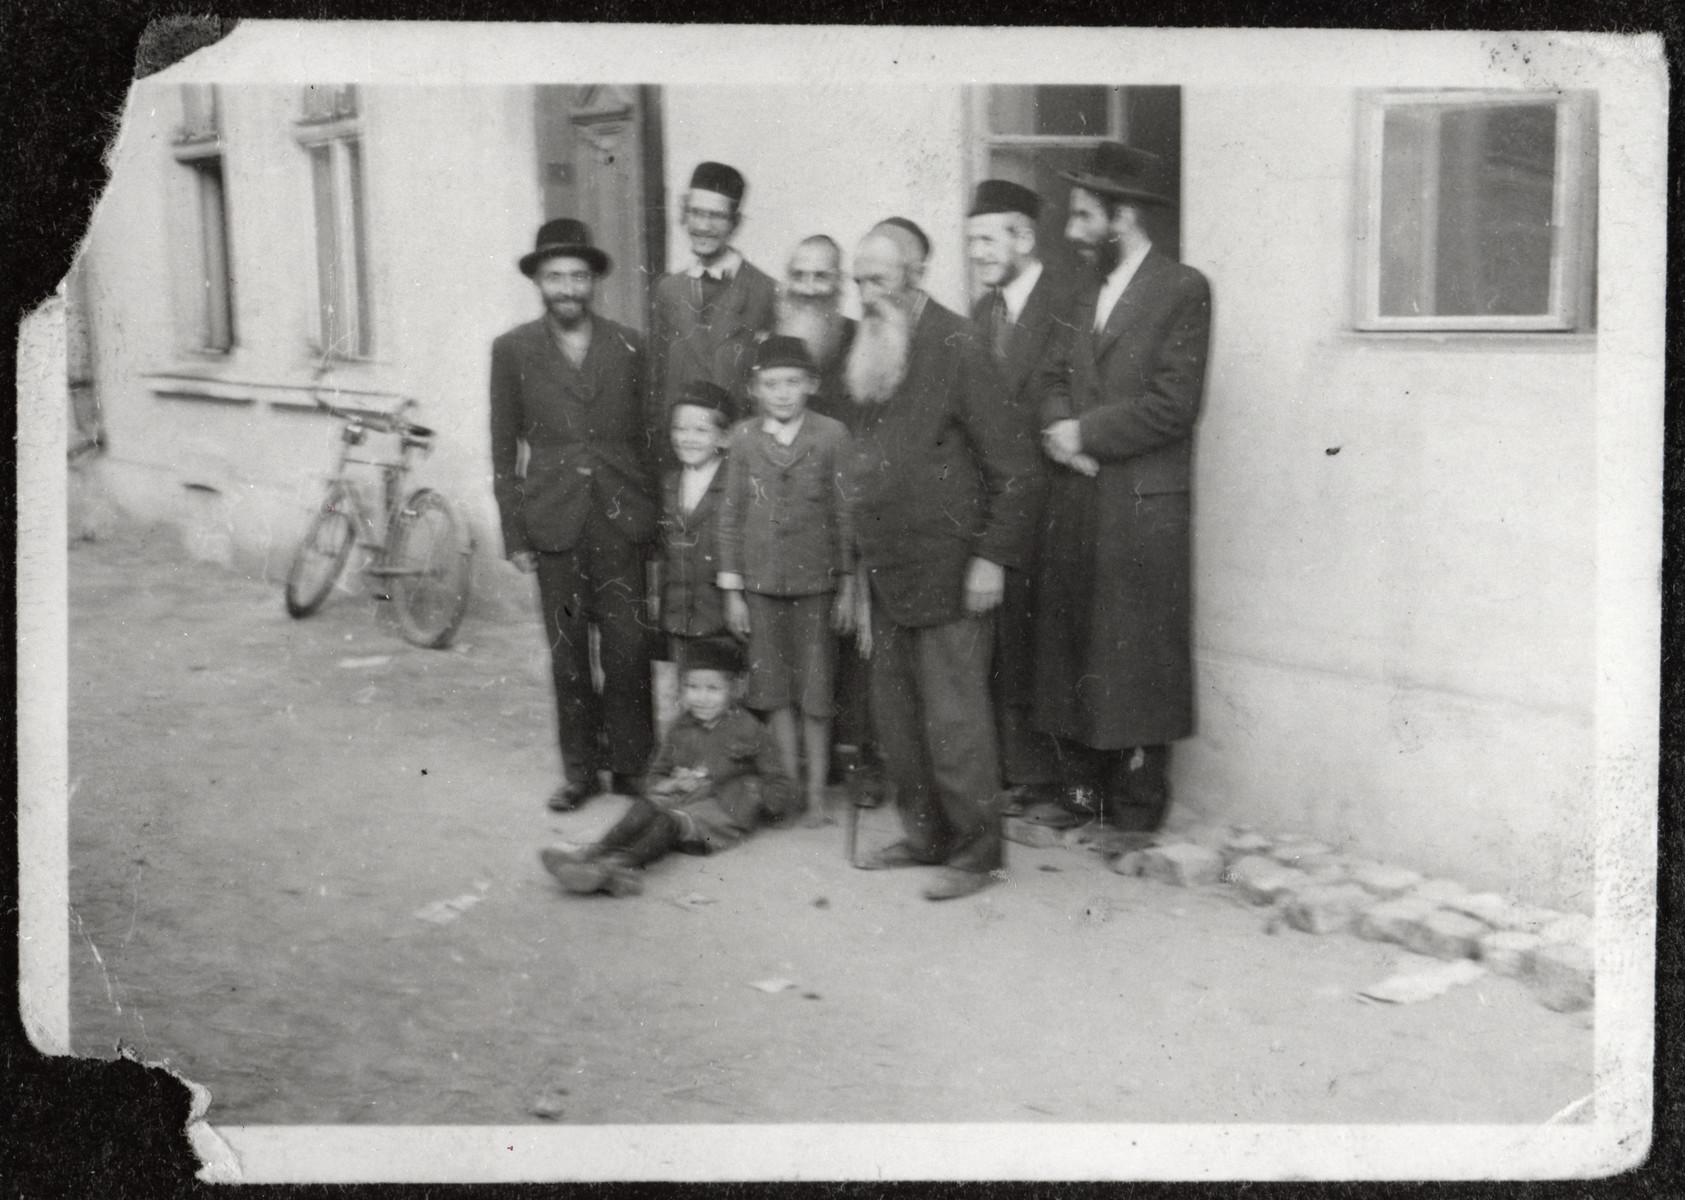 A group of religious Jews pose outside a building in the Rovno ghetto.